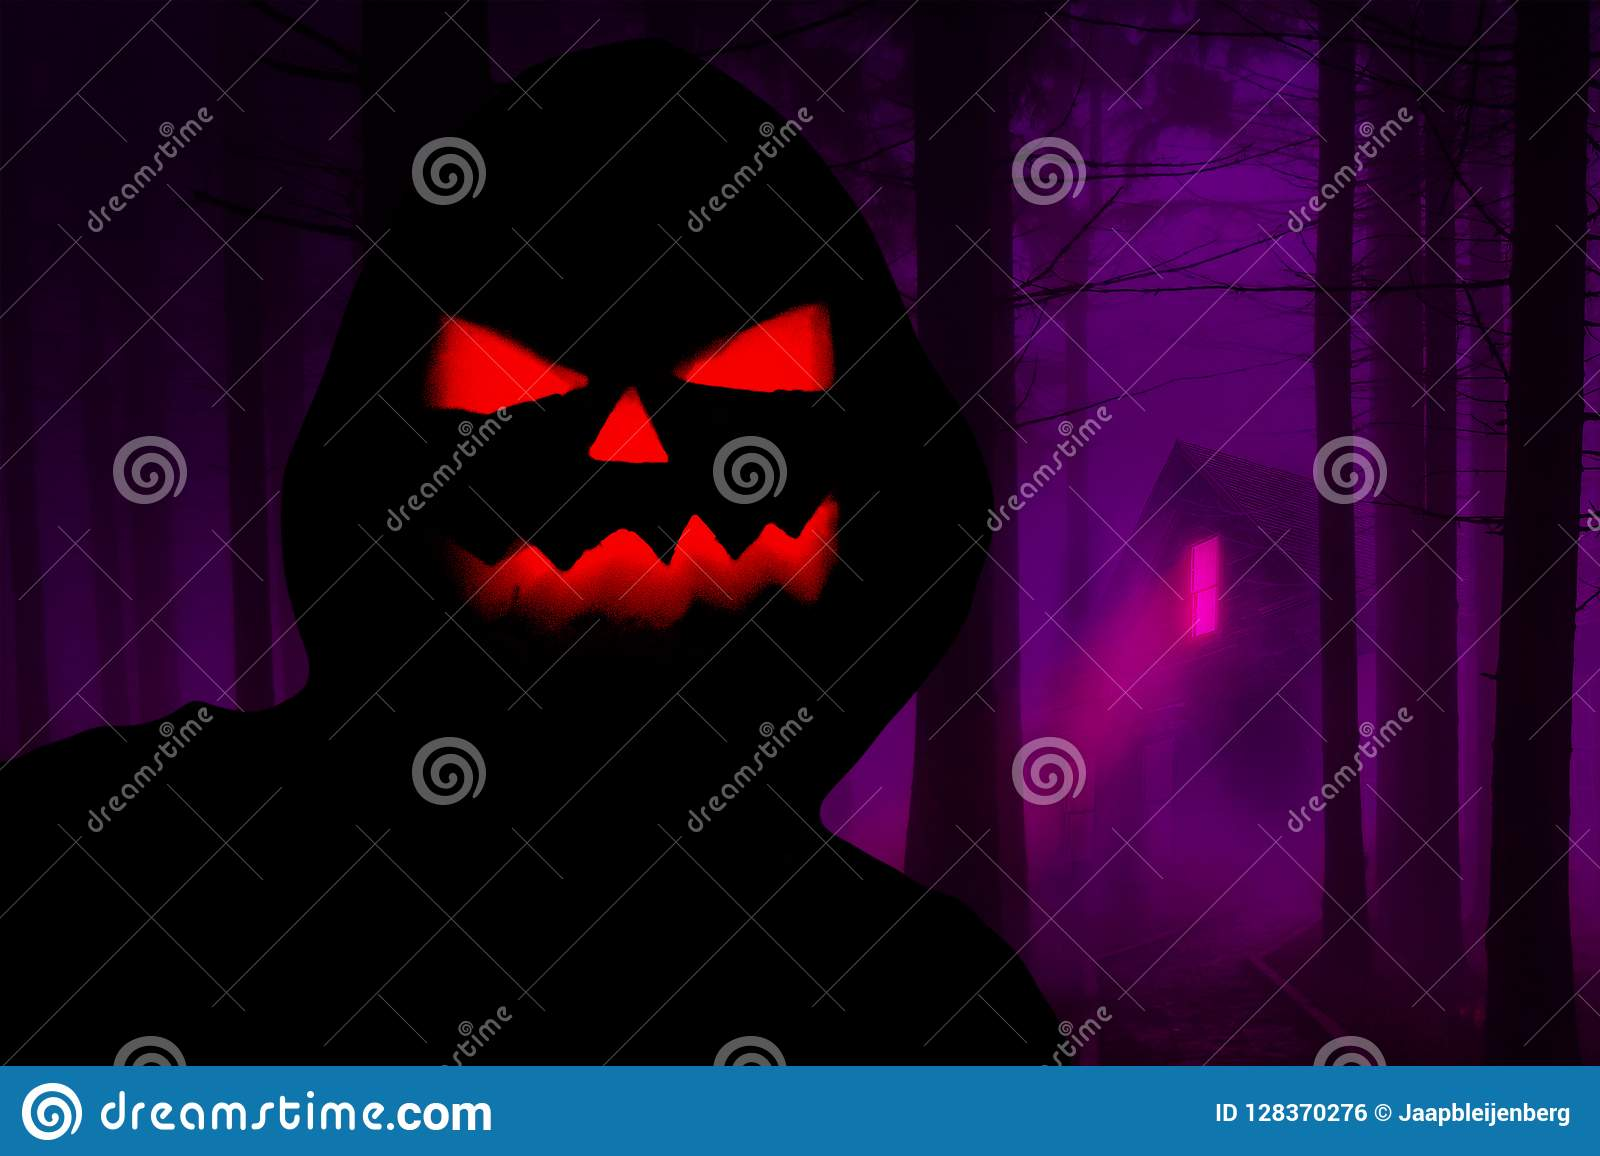 Halloween creepy hooded silhouette with a evil pumpkin face standing in a horror forest with a haunted house in the background